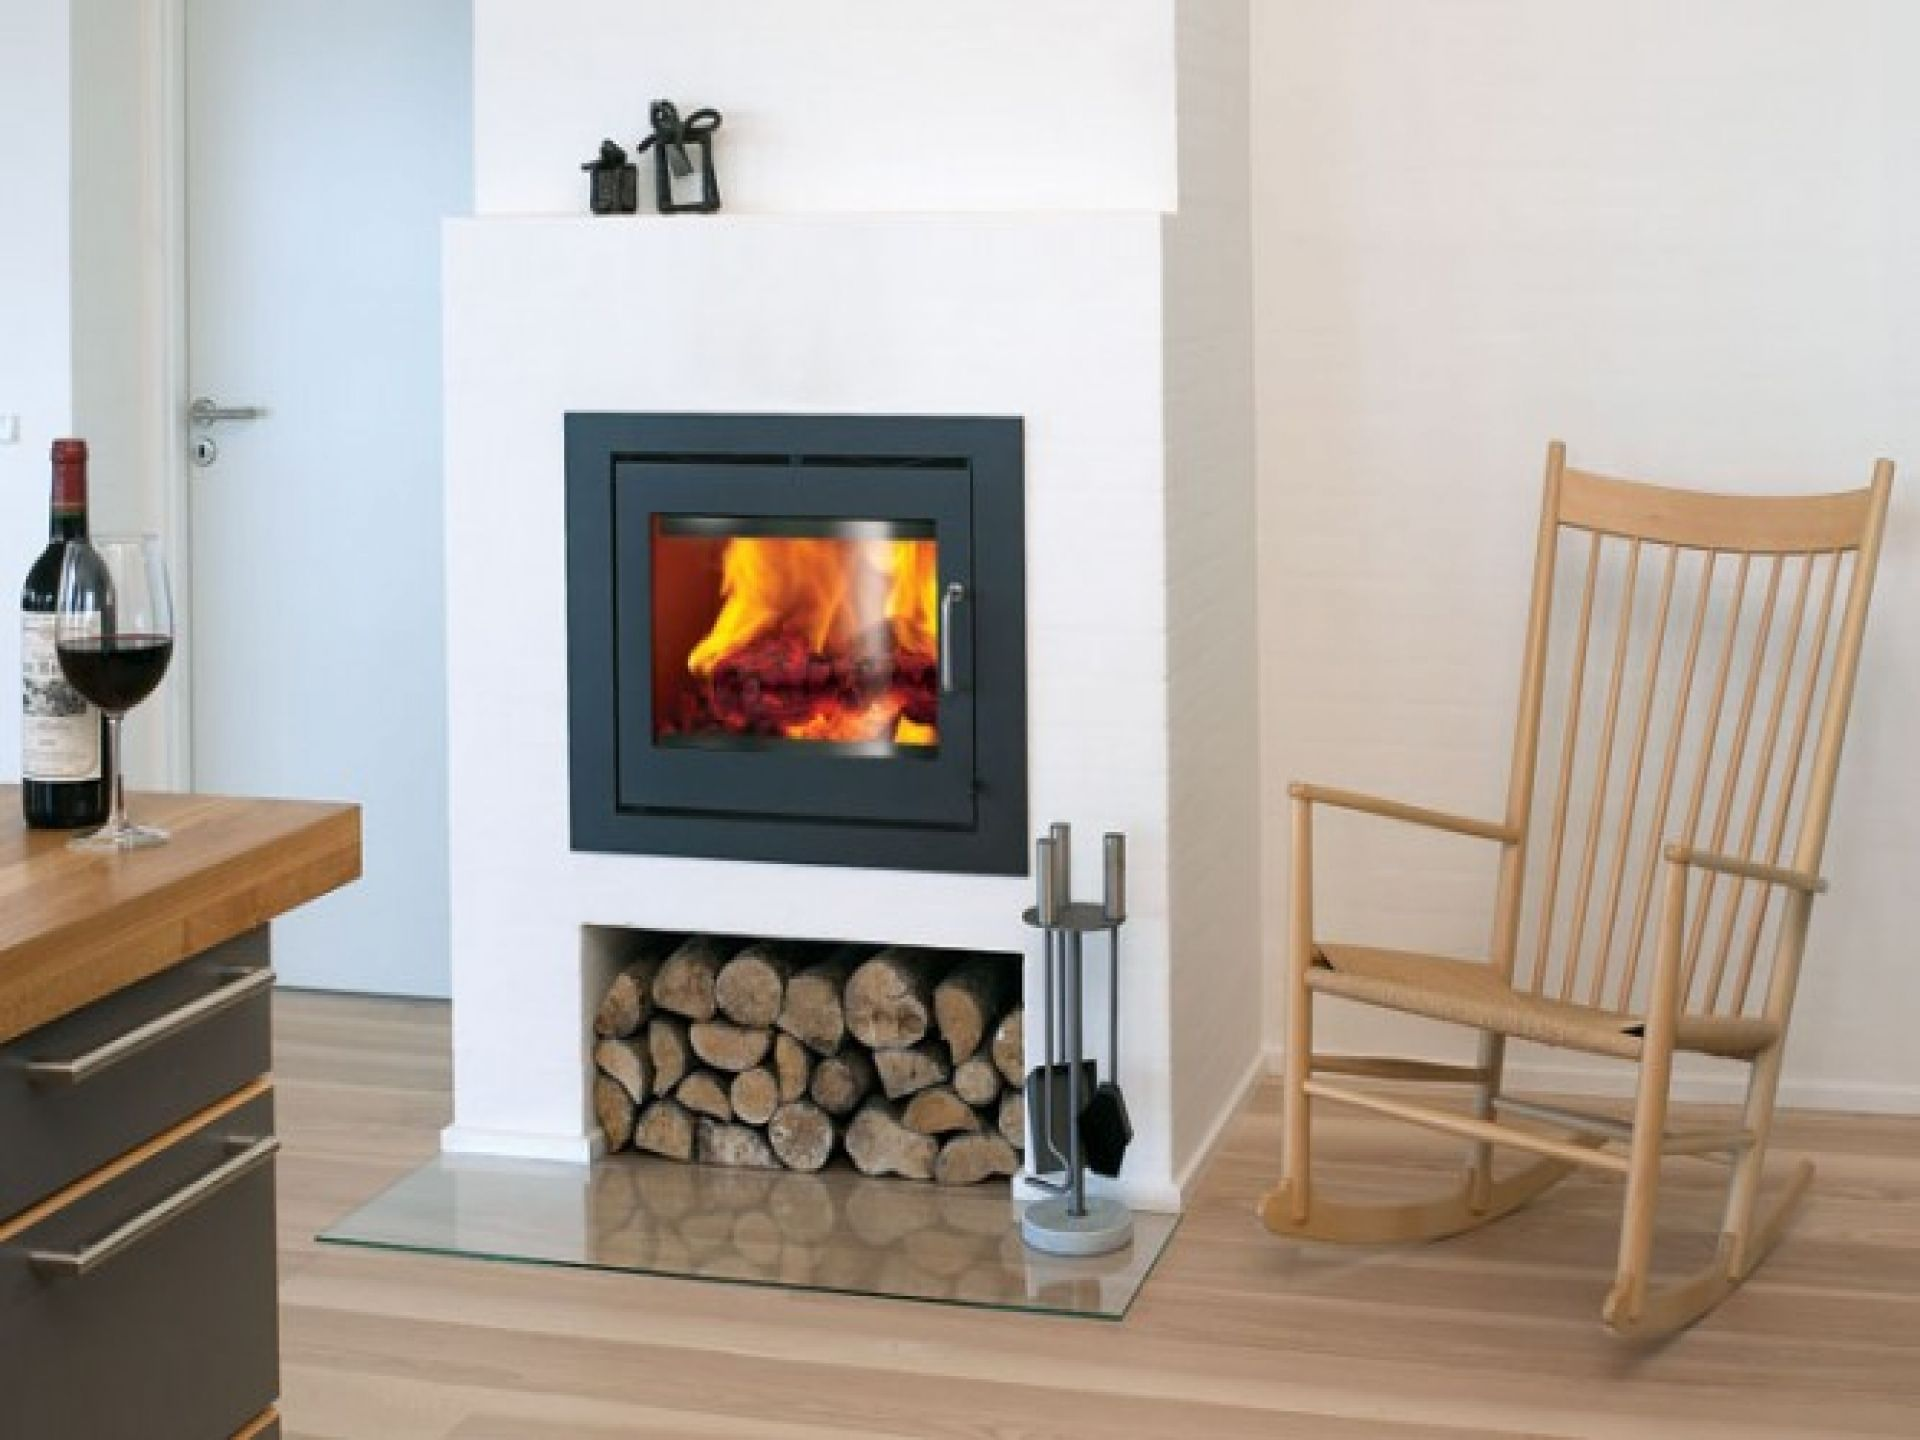 Modern Fireplace Insert Decorate Your Home With Fake Fireplace Ideas Best Wood Burning